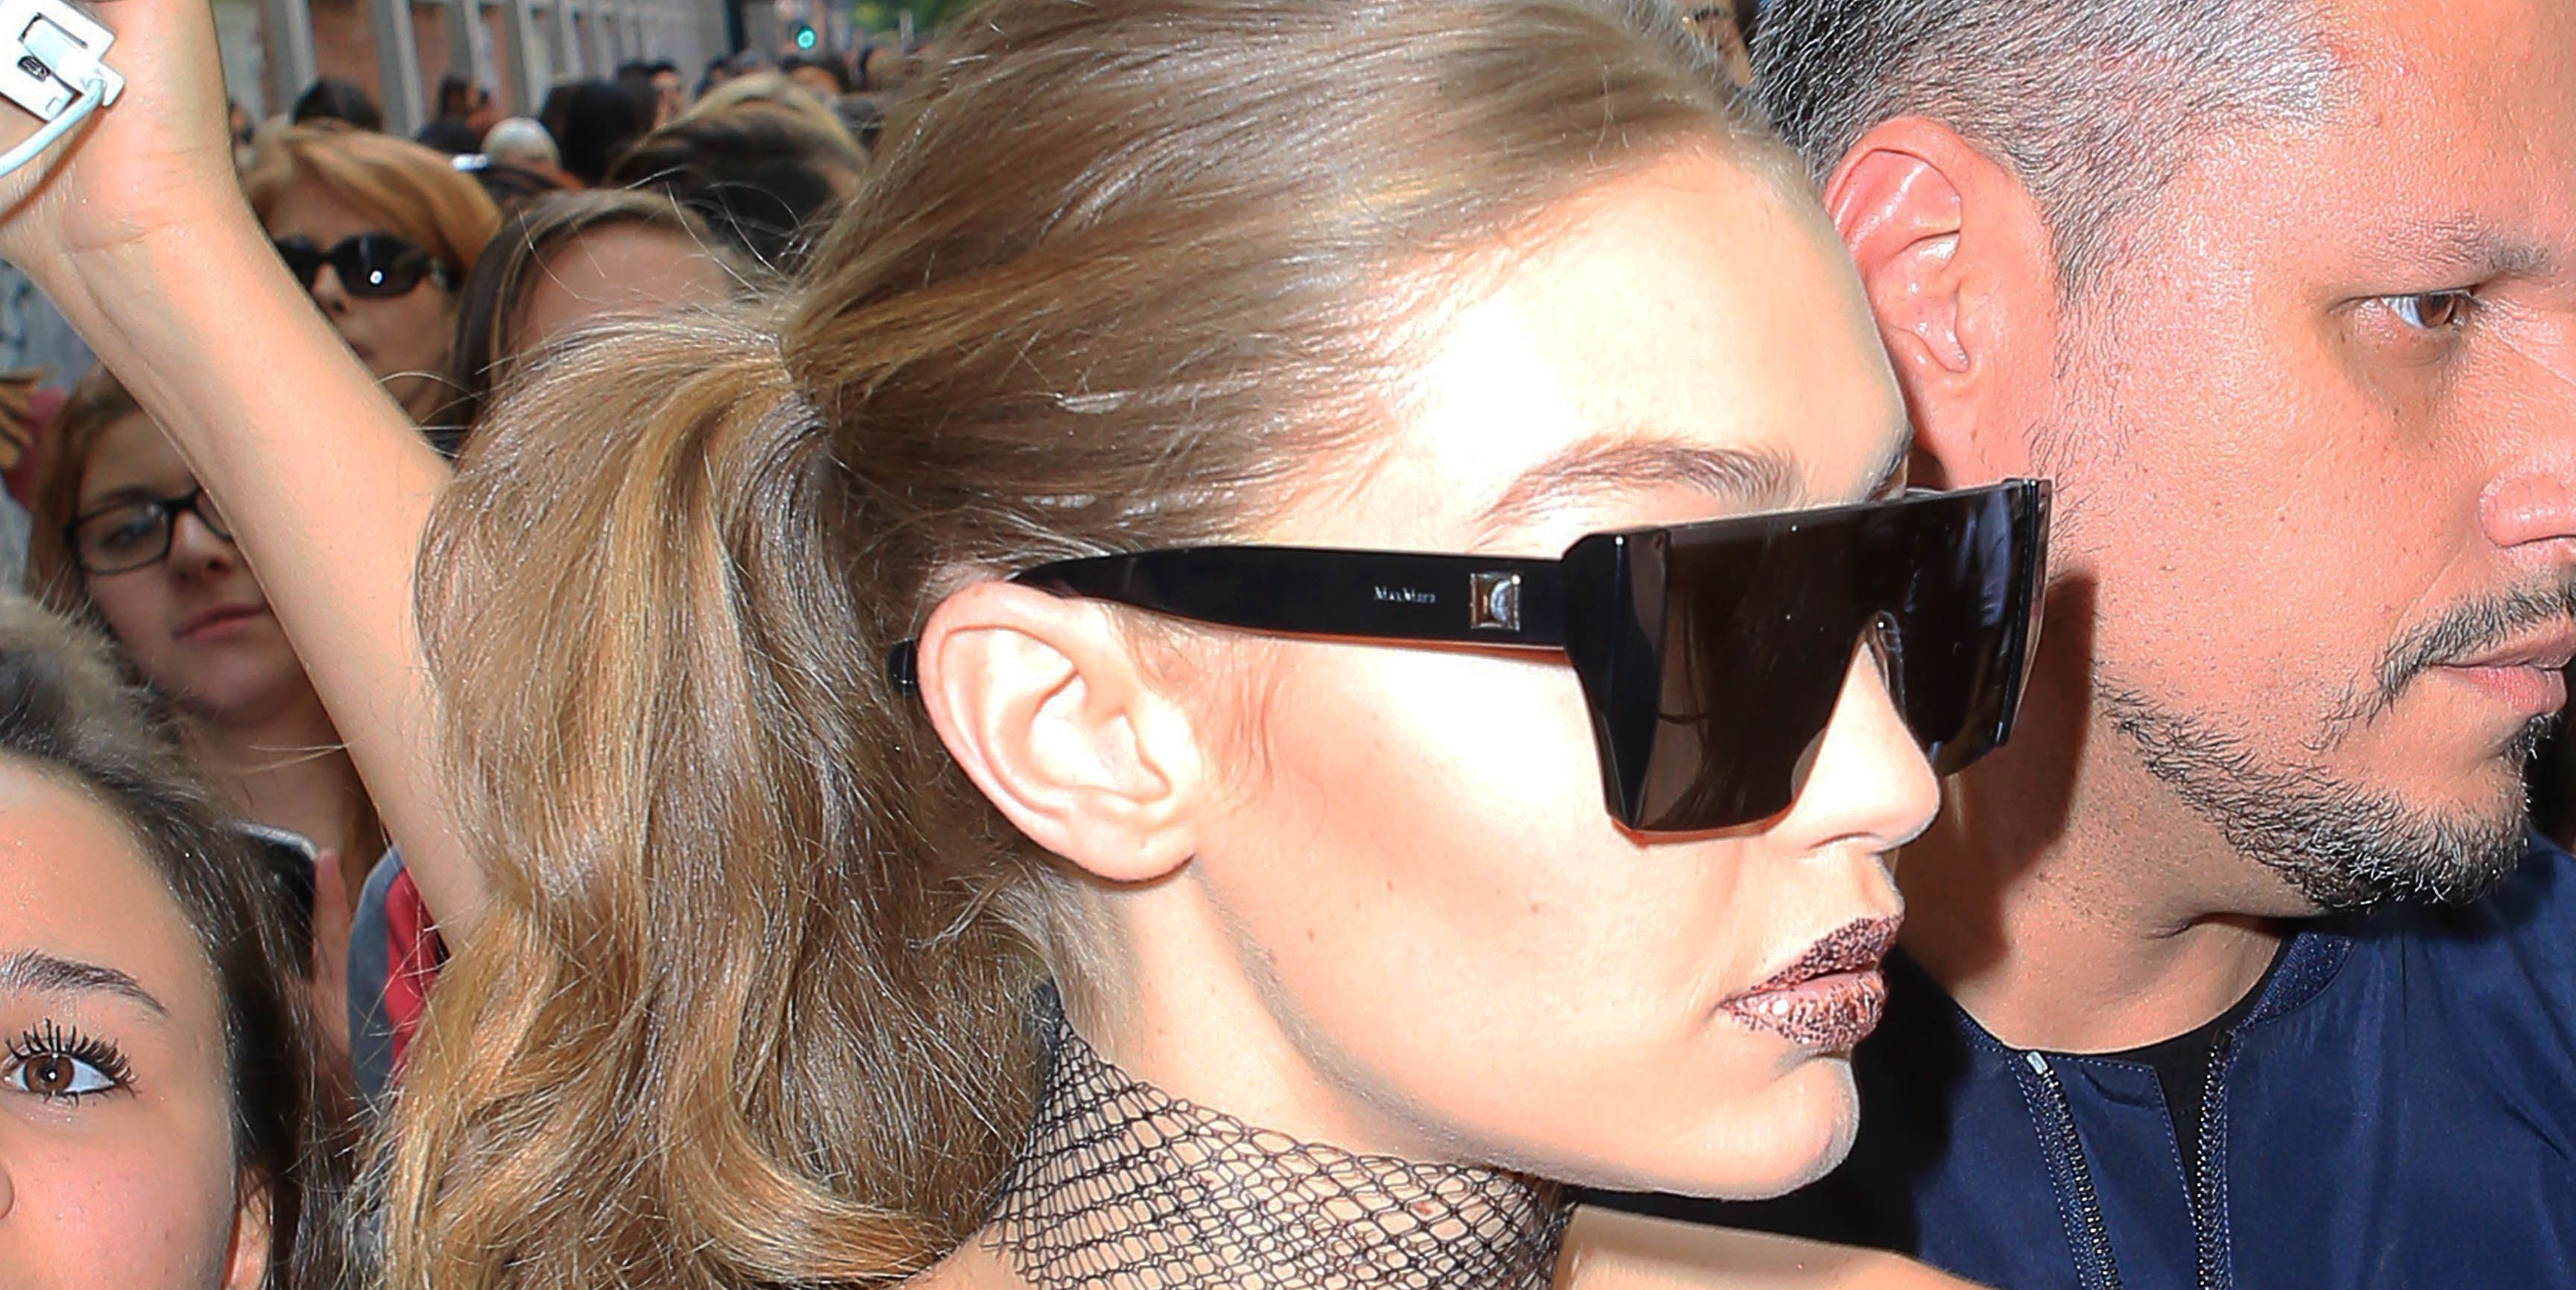 Gigi Hadid Fiercely Defends Herself After Being Manhandled at Milan Fashion Week